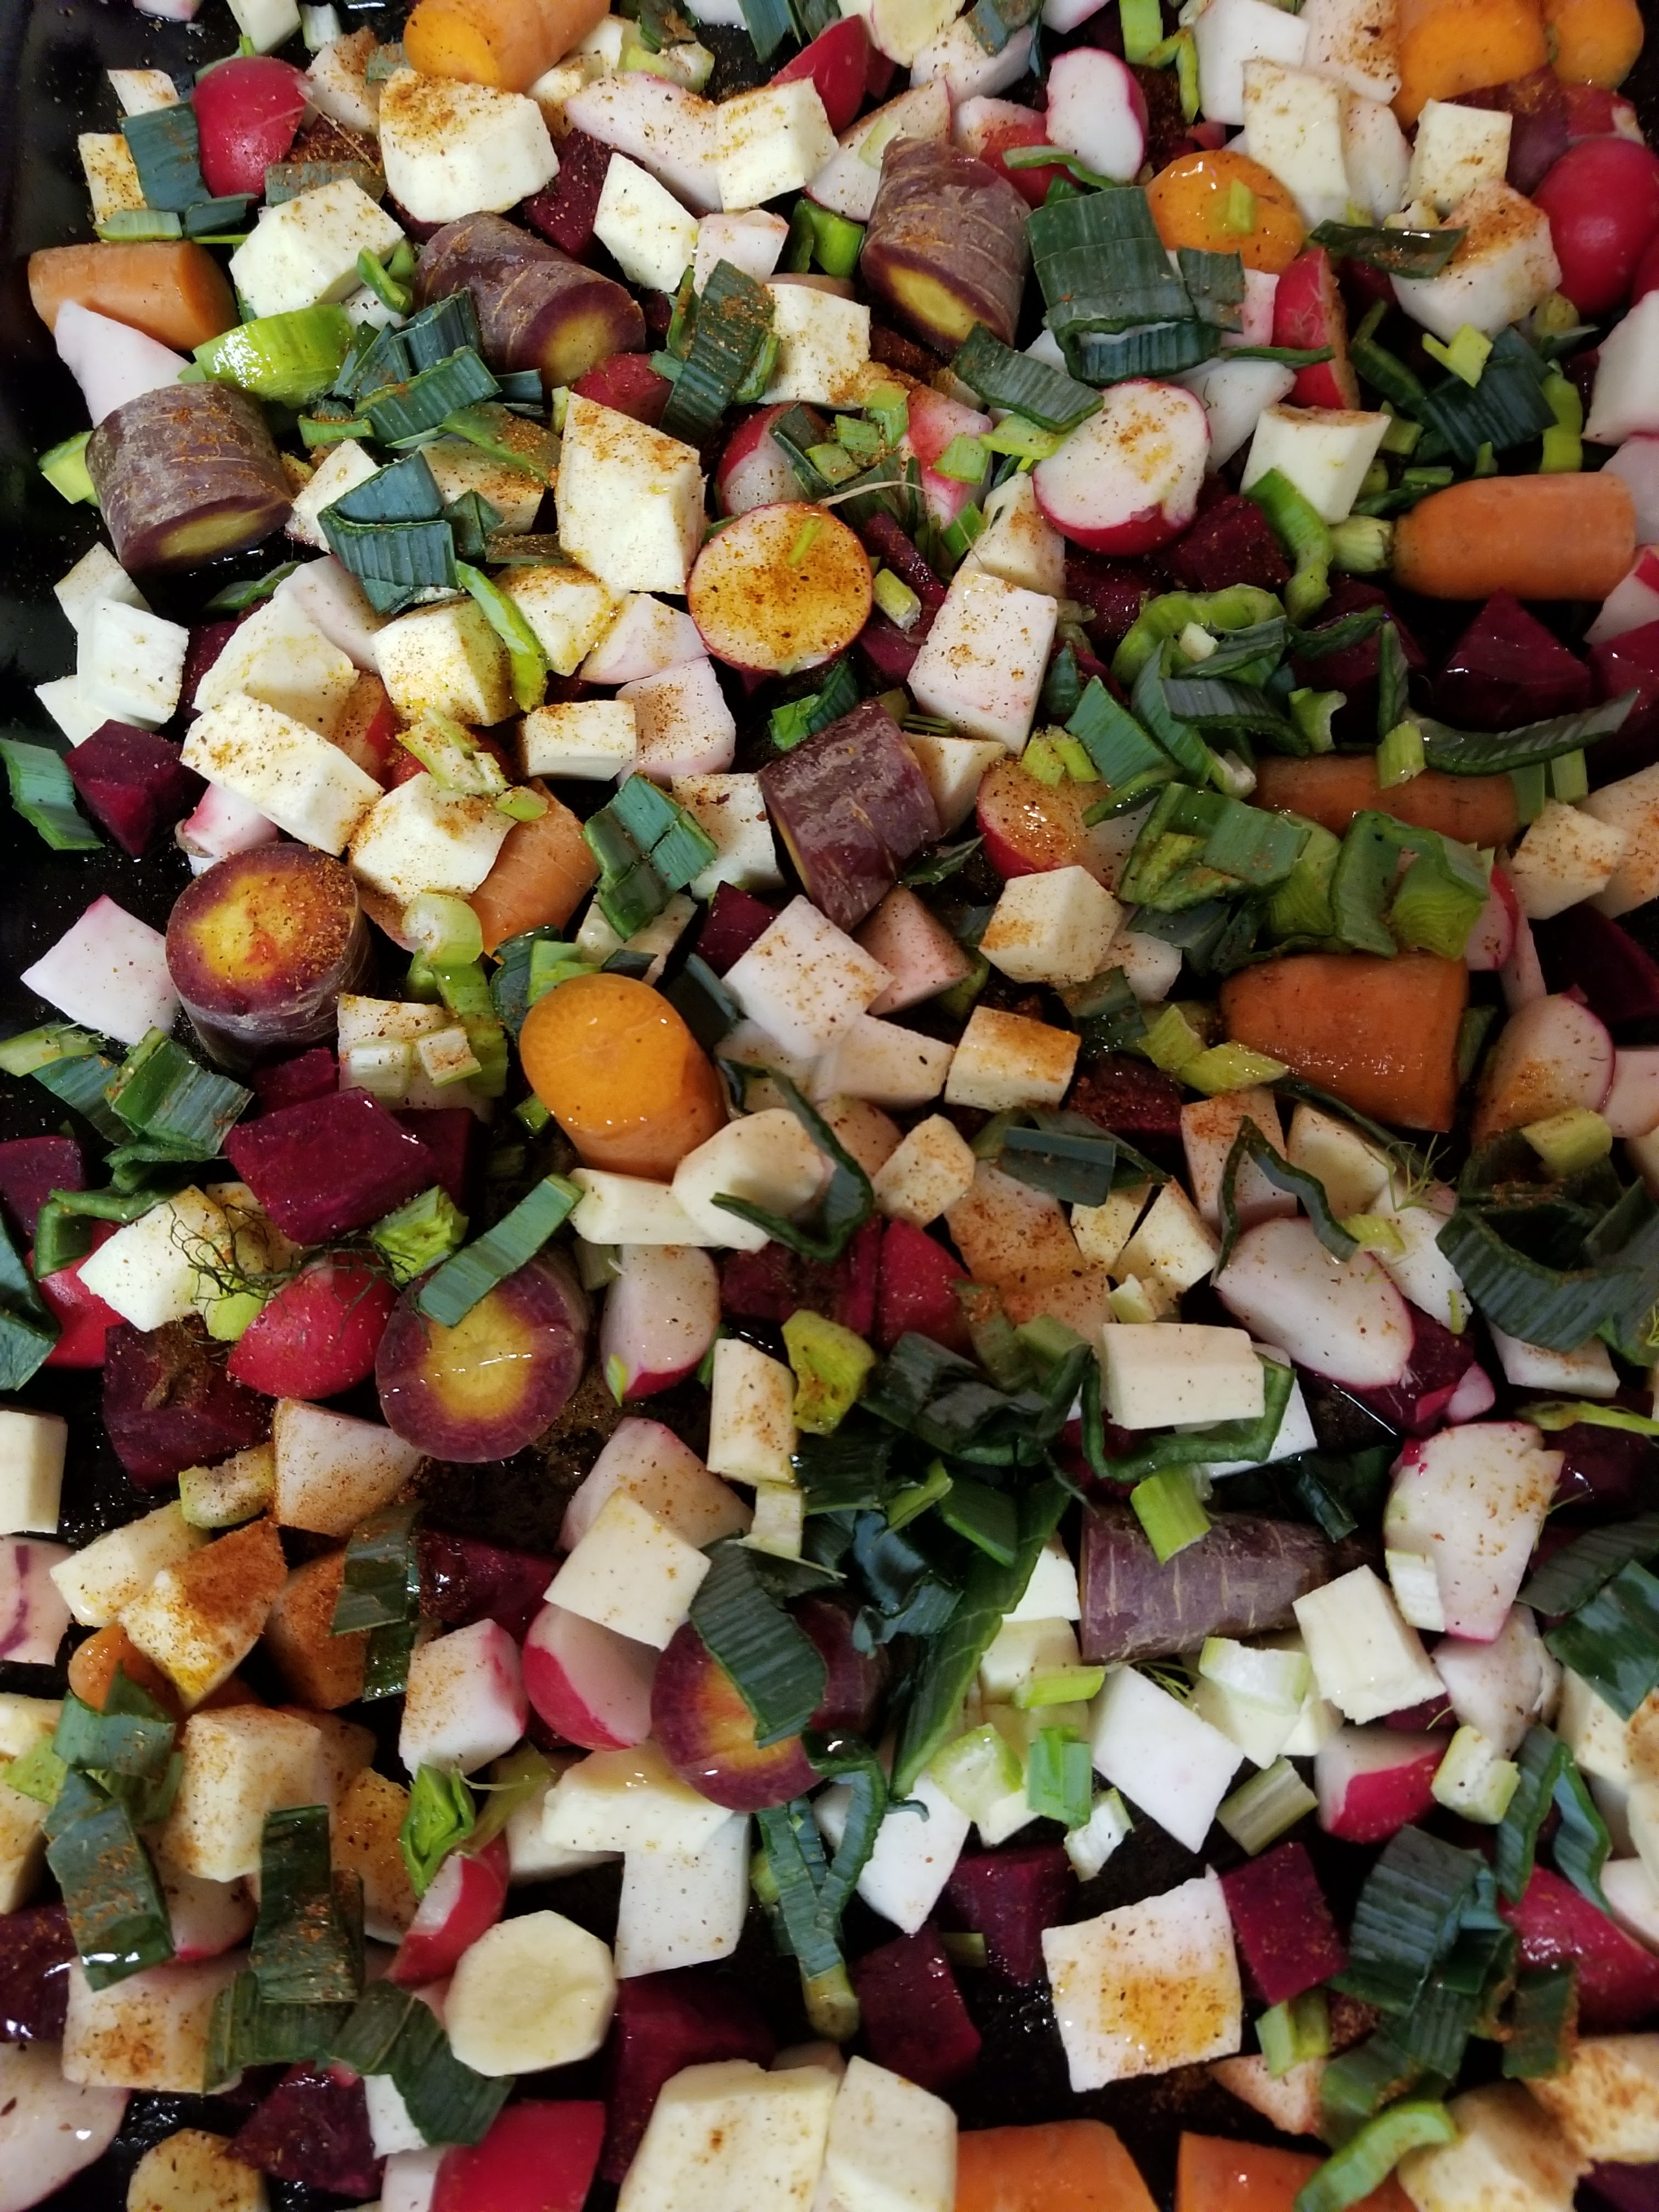 Winter Vegetables with radishes, parsnips, beets, carrots, parsnips, celery root, rutabagas, and leeks.